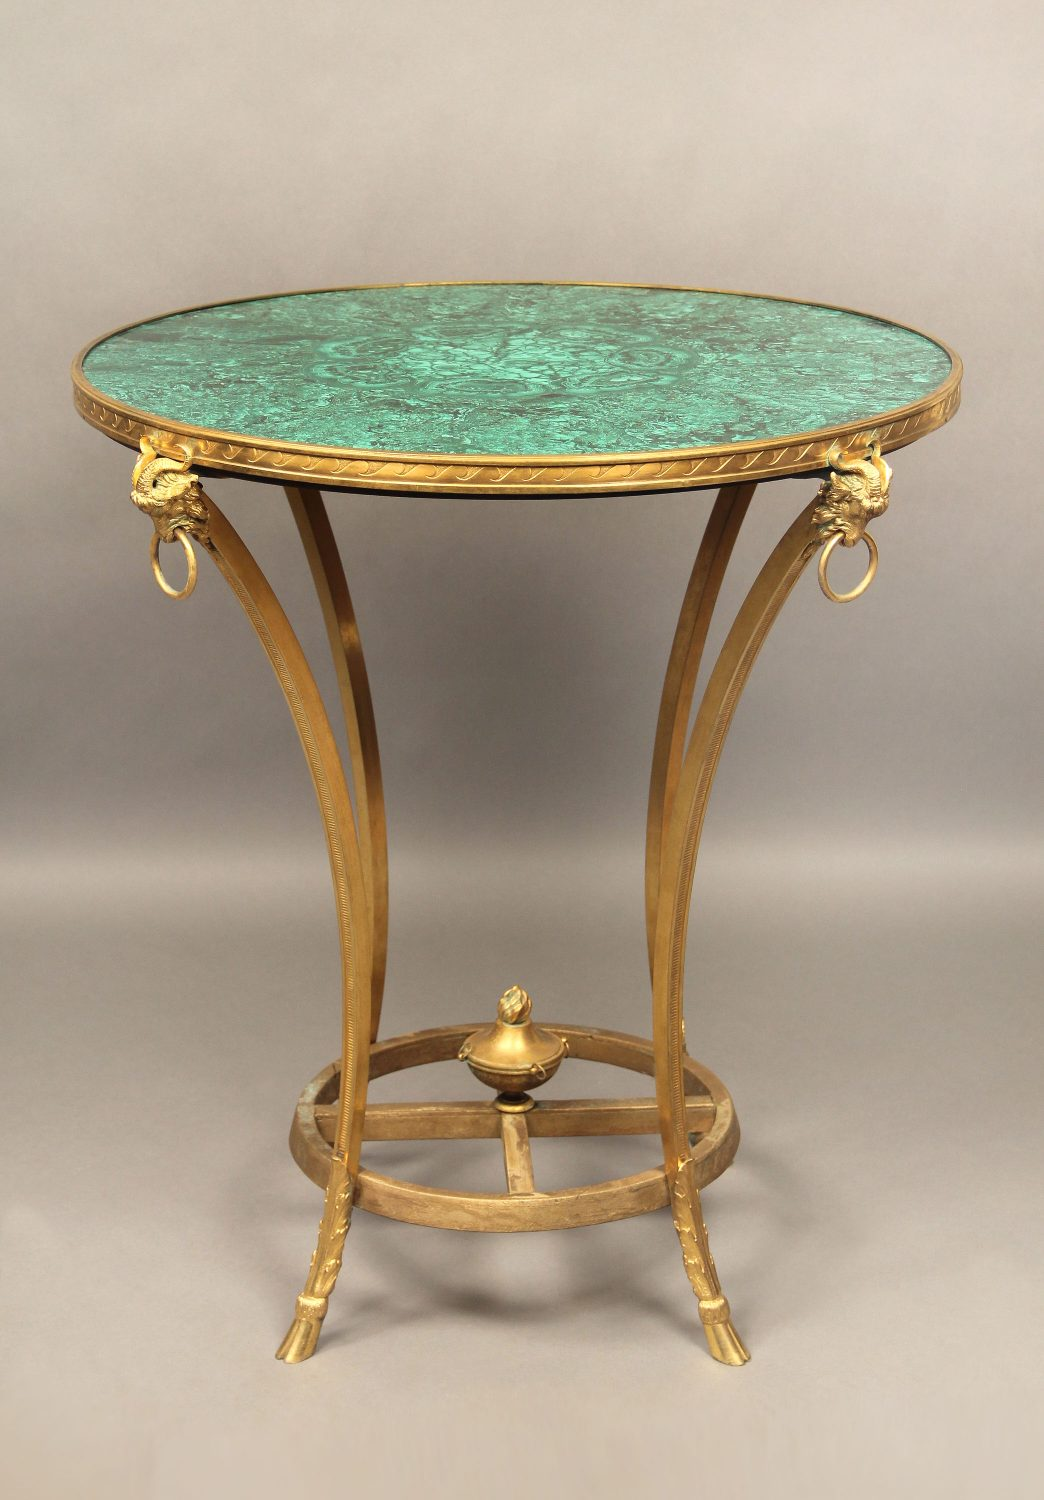 A Late 19th Century Gilt Bronze and Gilt Wood Mounted Empire Style Antique Malachite Lamp Table